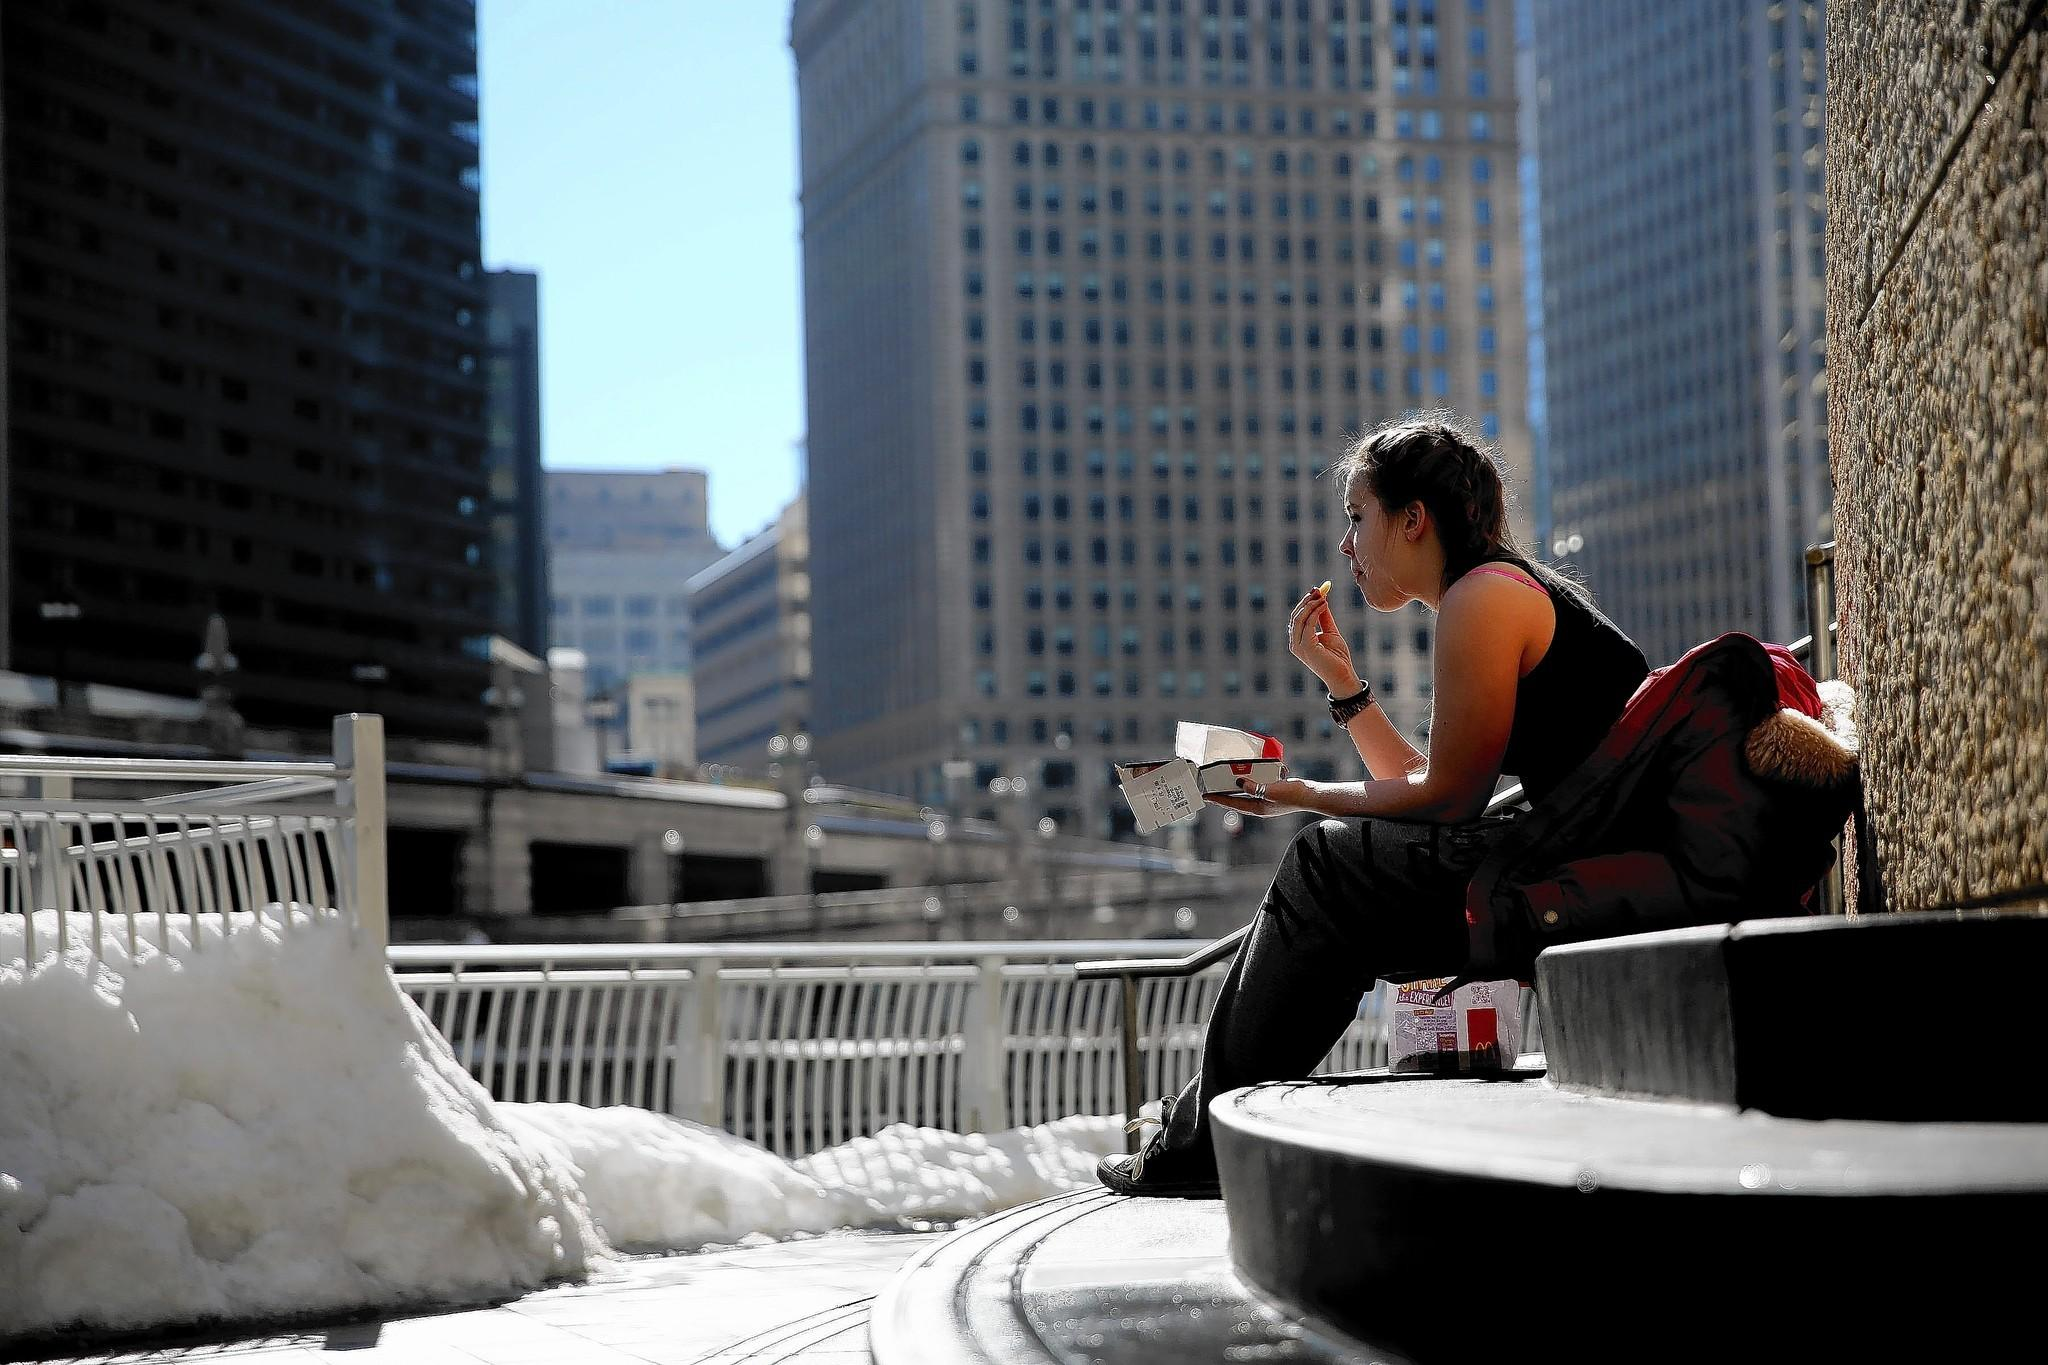 Holly Haynes, 16, of London, lunches amid Wednesday's fleeting good weather at Trump Plaza in Chicago.